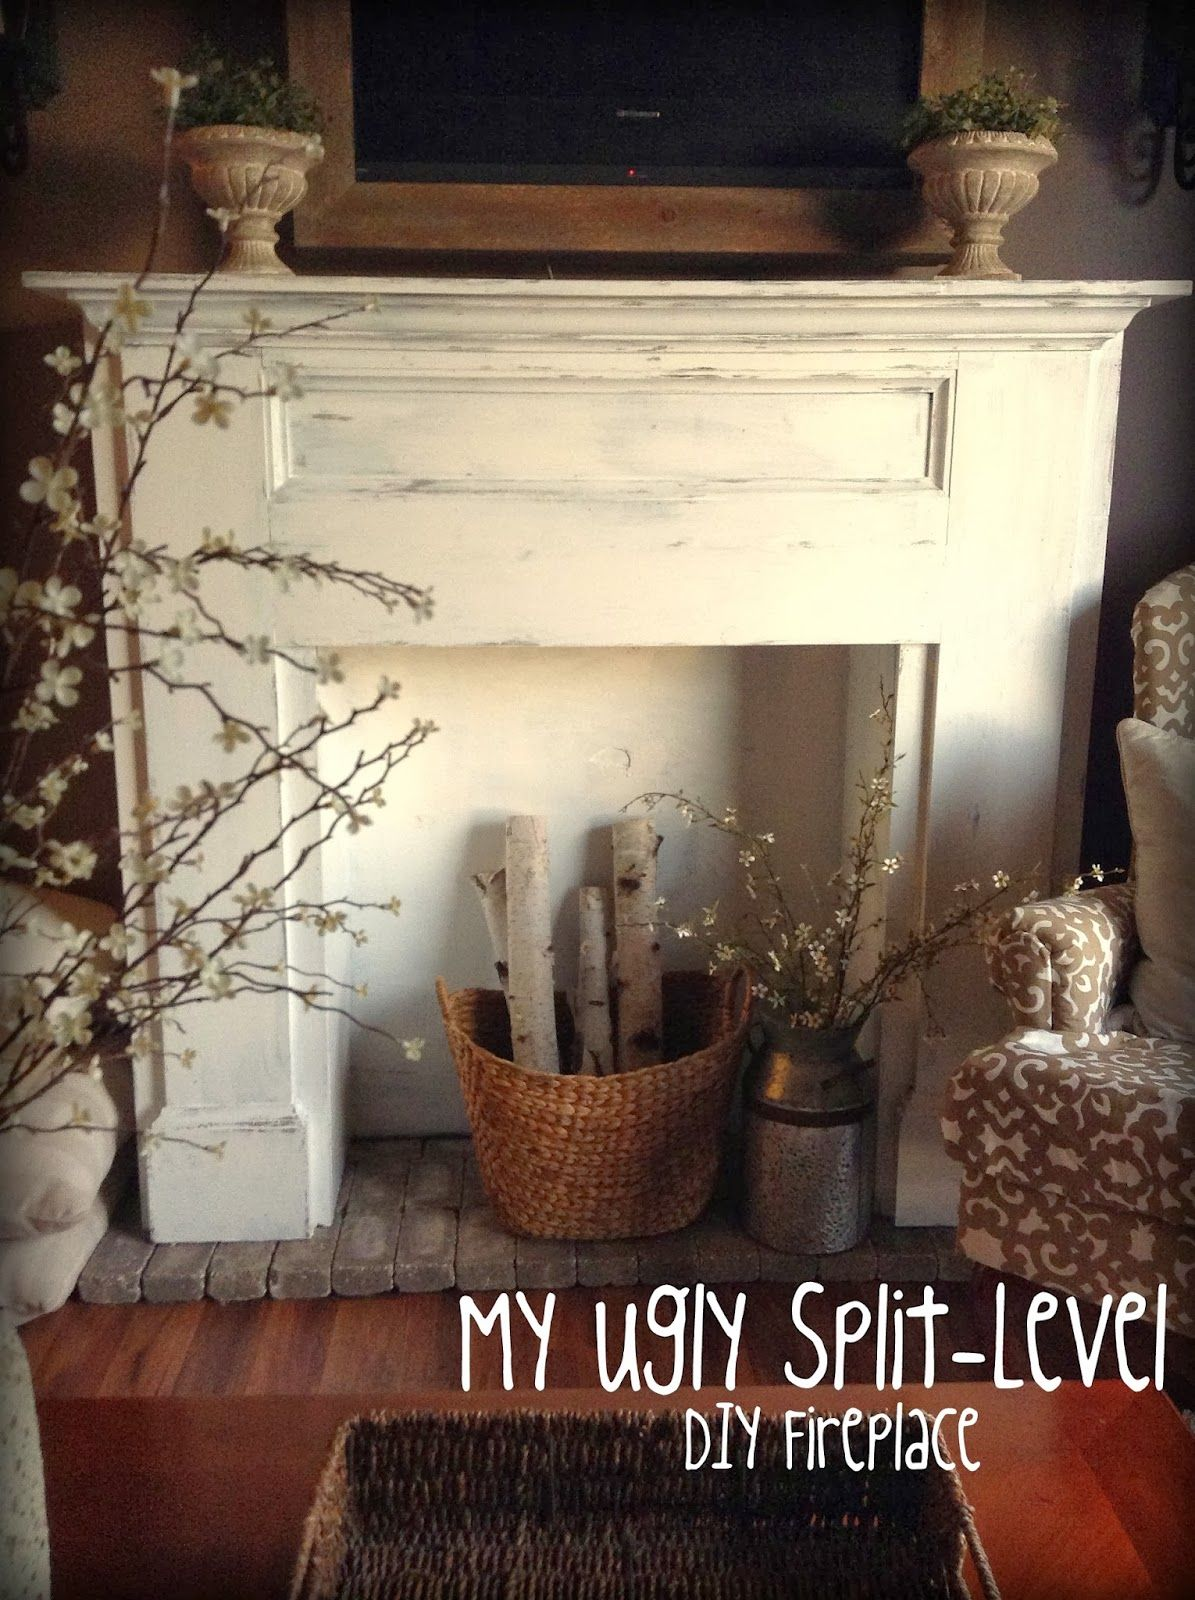 Living Room Update Ideas: Living Room Update DIY Fireplace